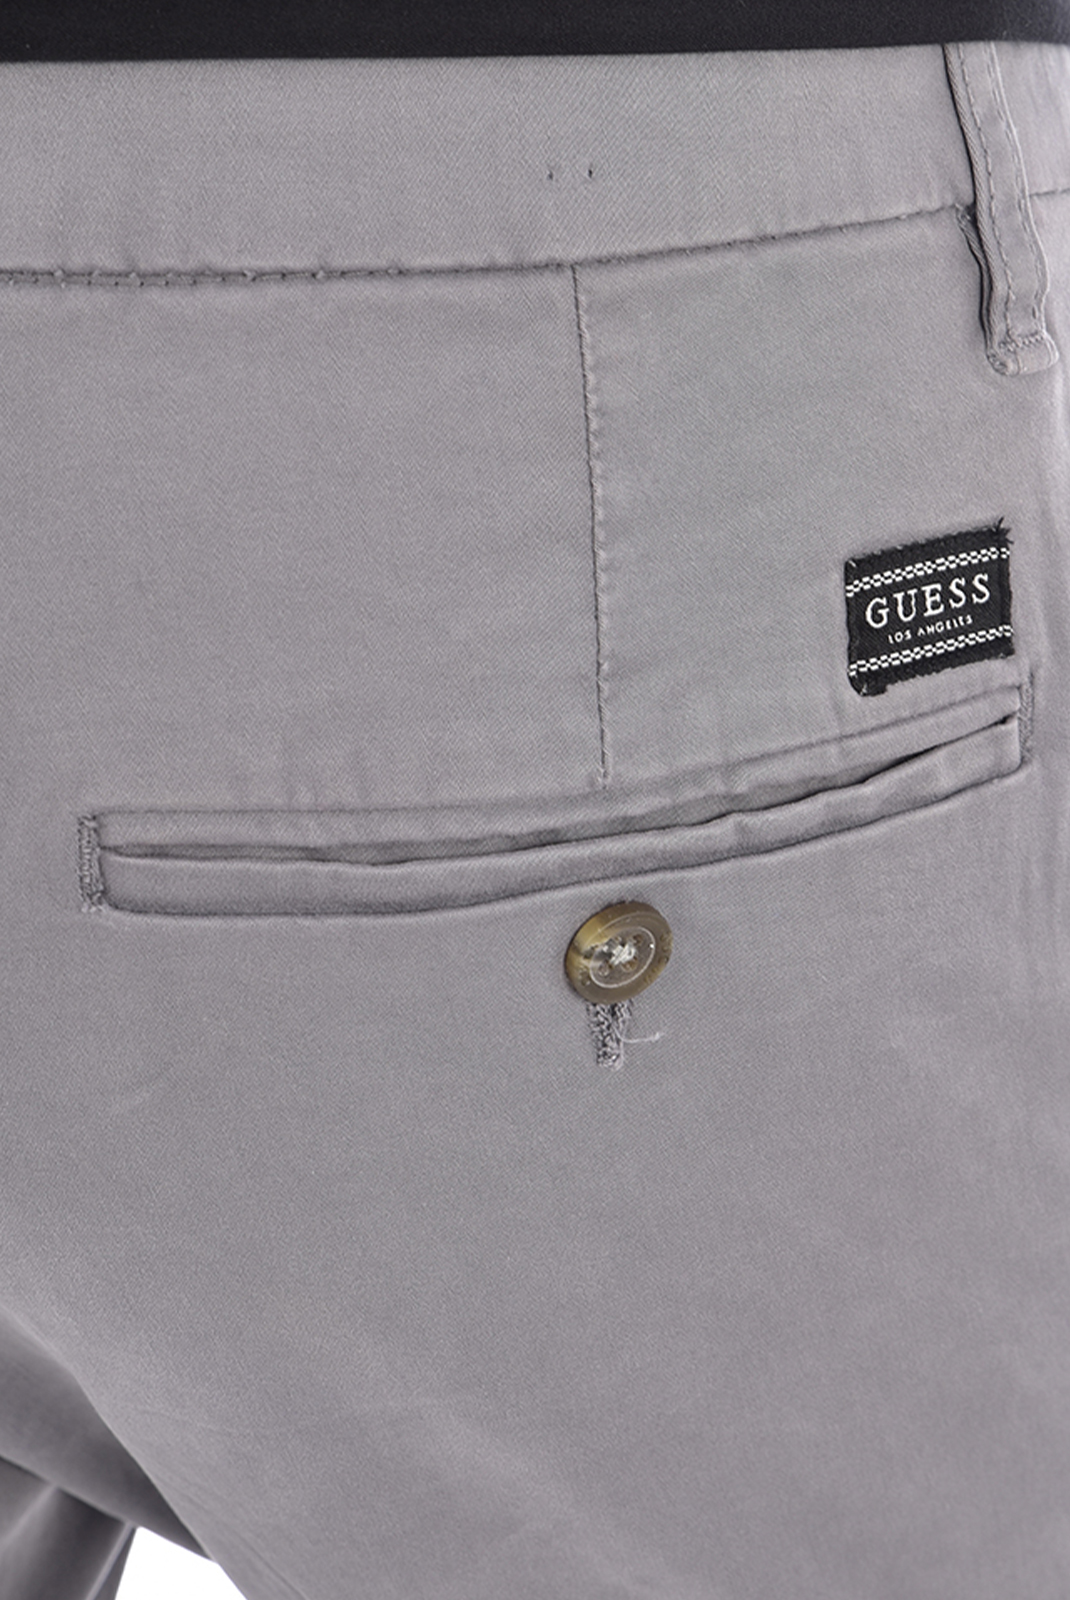 Pantalons chino/citadin  Guess jeans M94B29 WC7Y0 DANIEL G9E0 WOLF SKIN